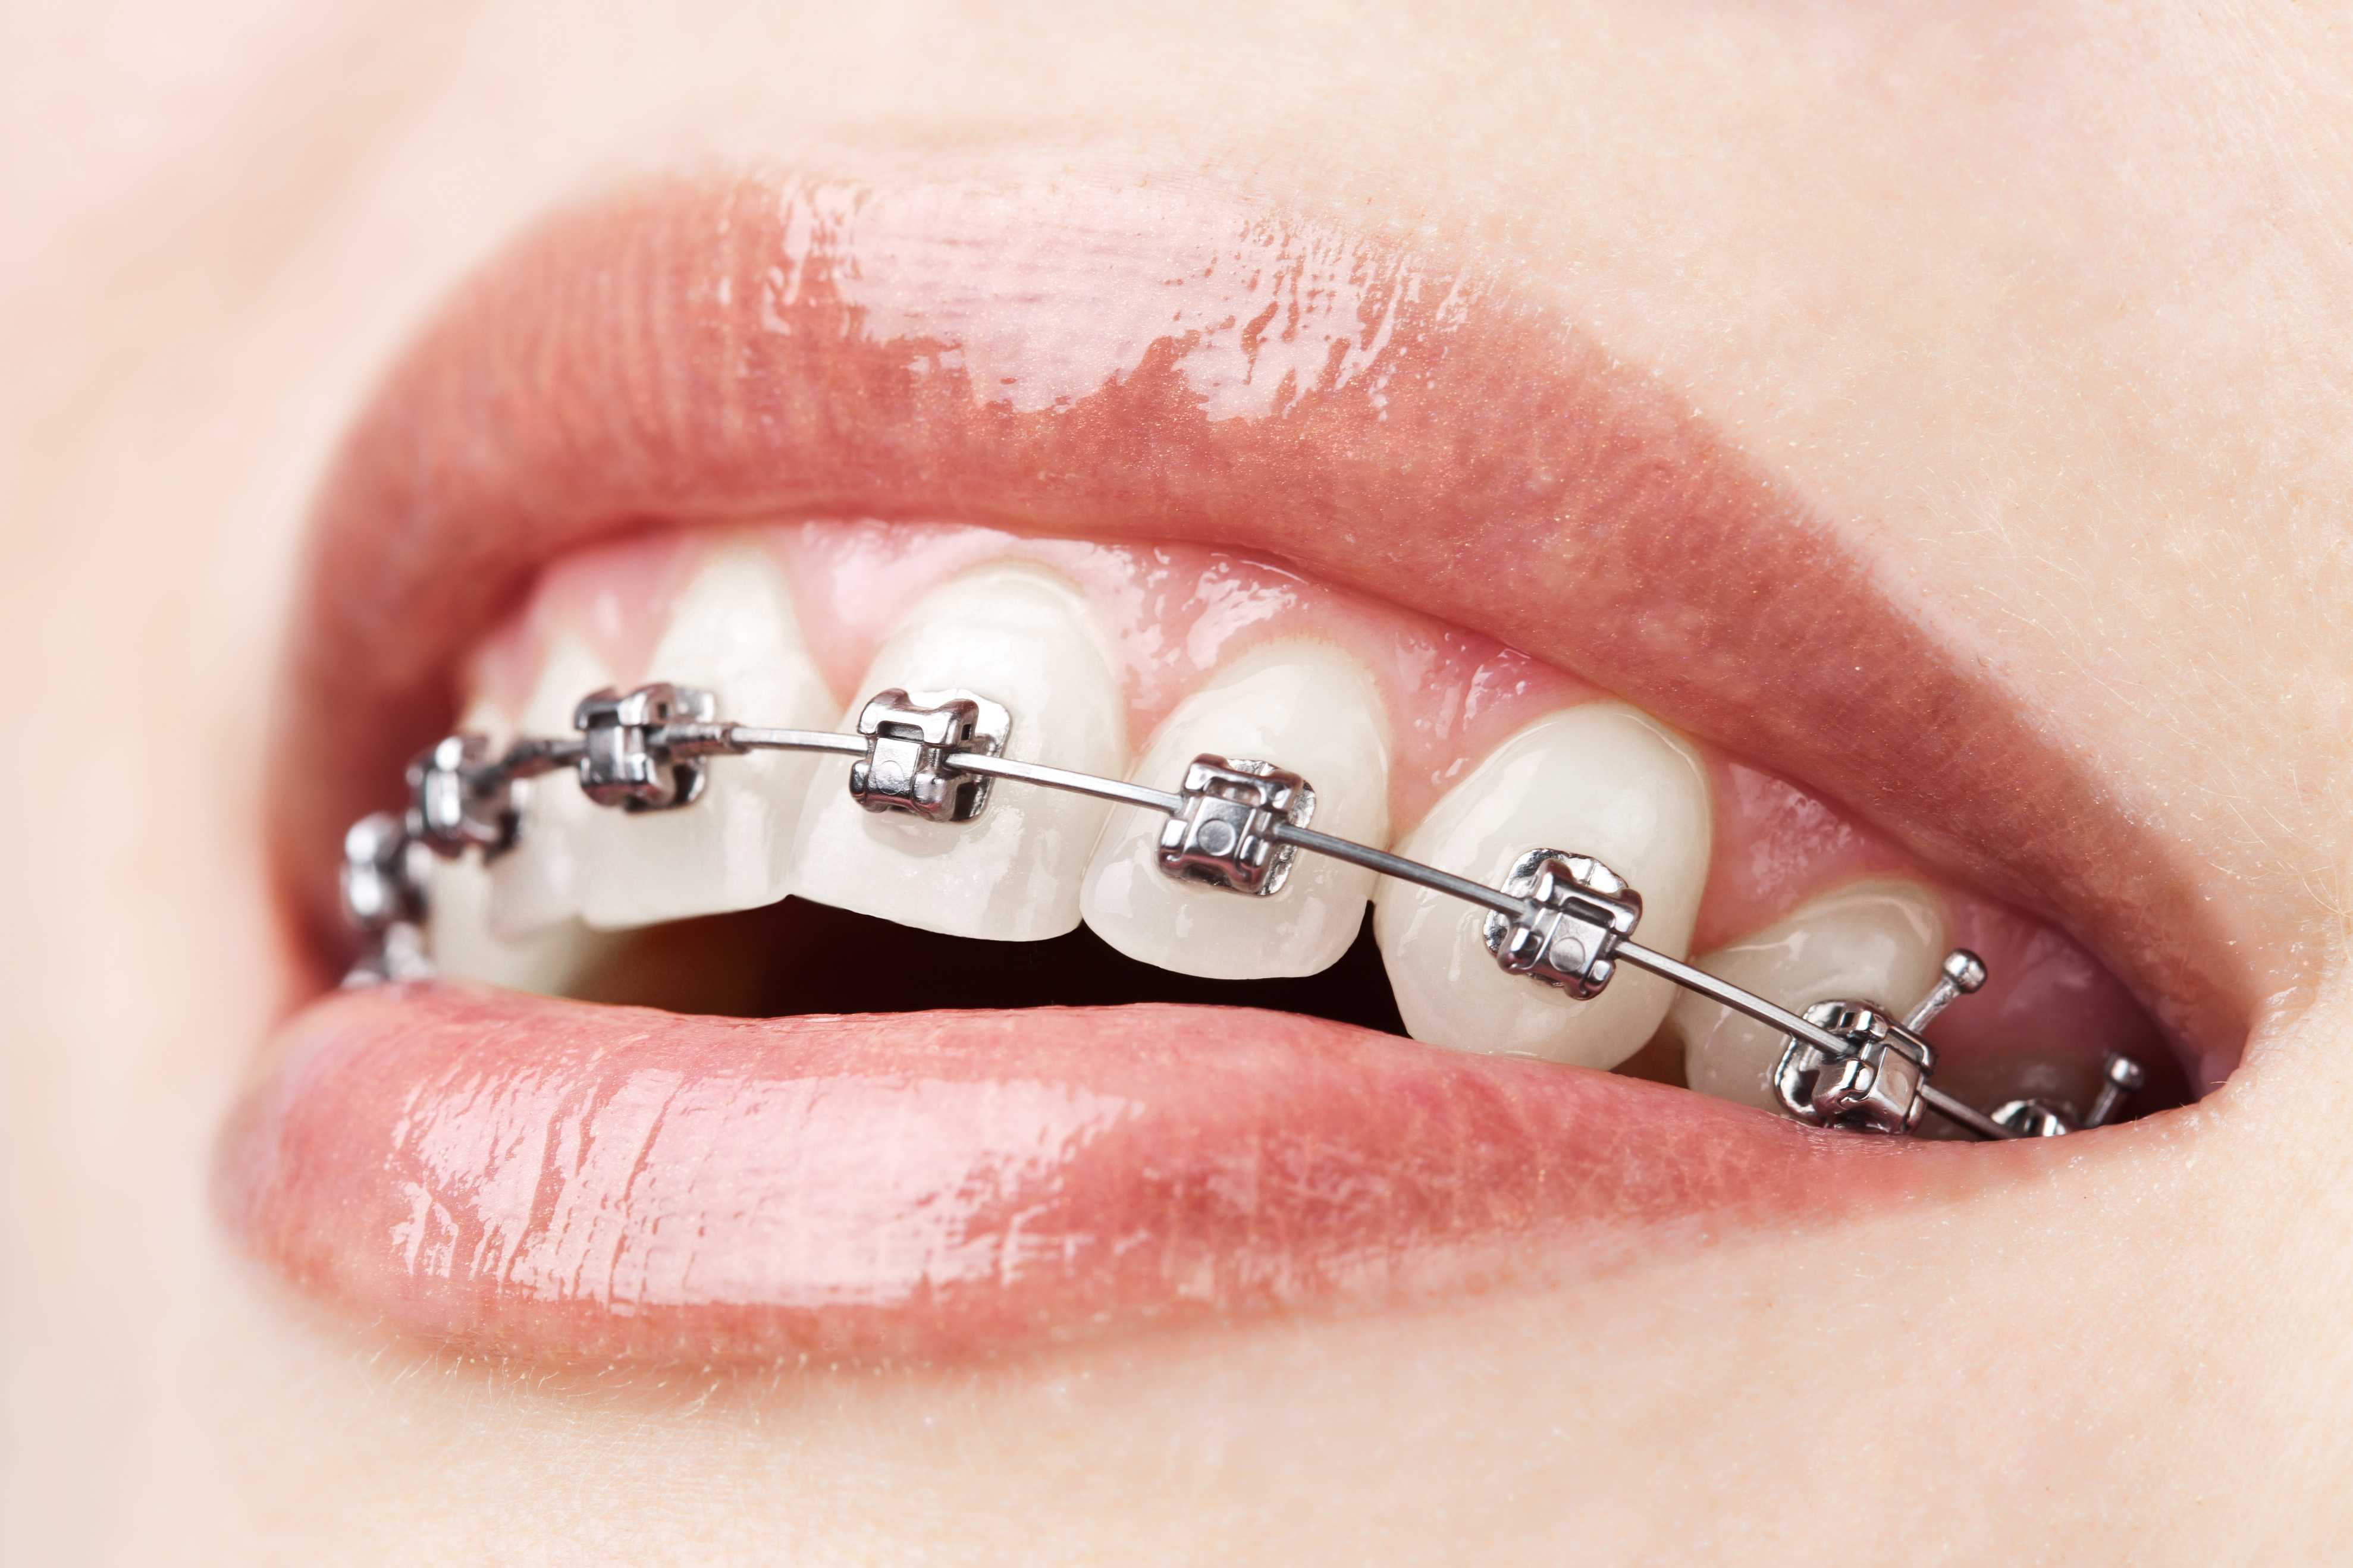 Black Market Braces and Rubber Bands: The DIY Trend